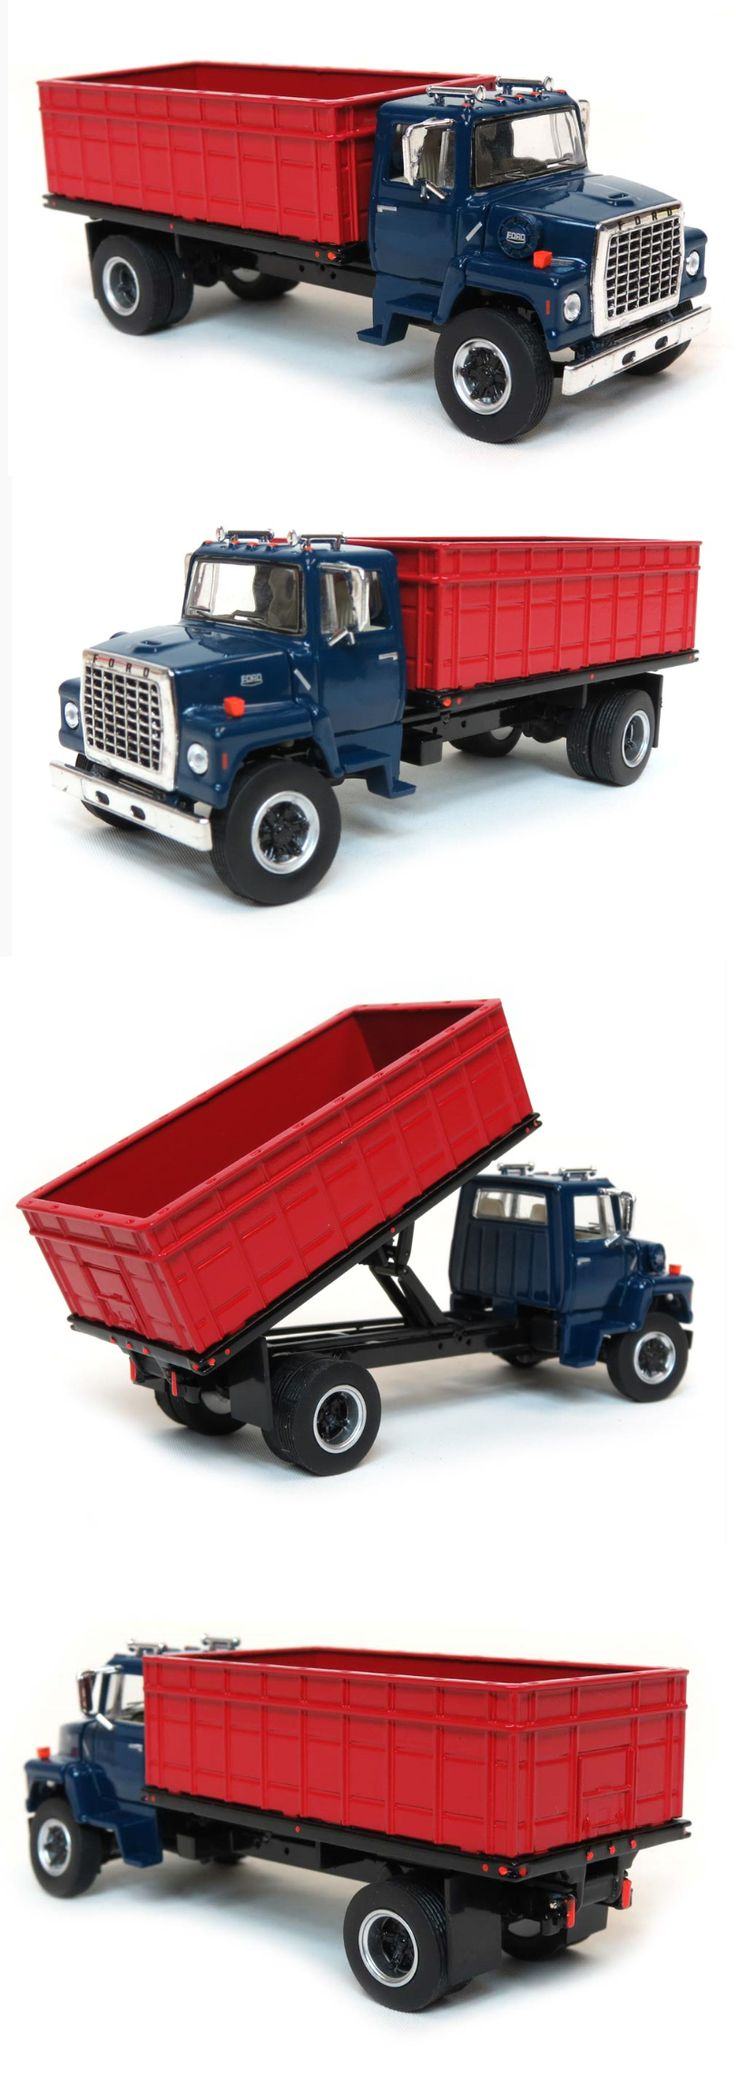 Contemporary manufacture 180506 new 1 64 top shelf replicas ford l9000 grain truck blue